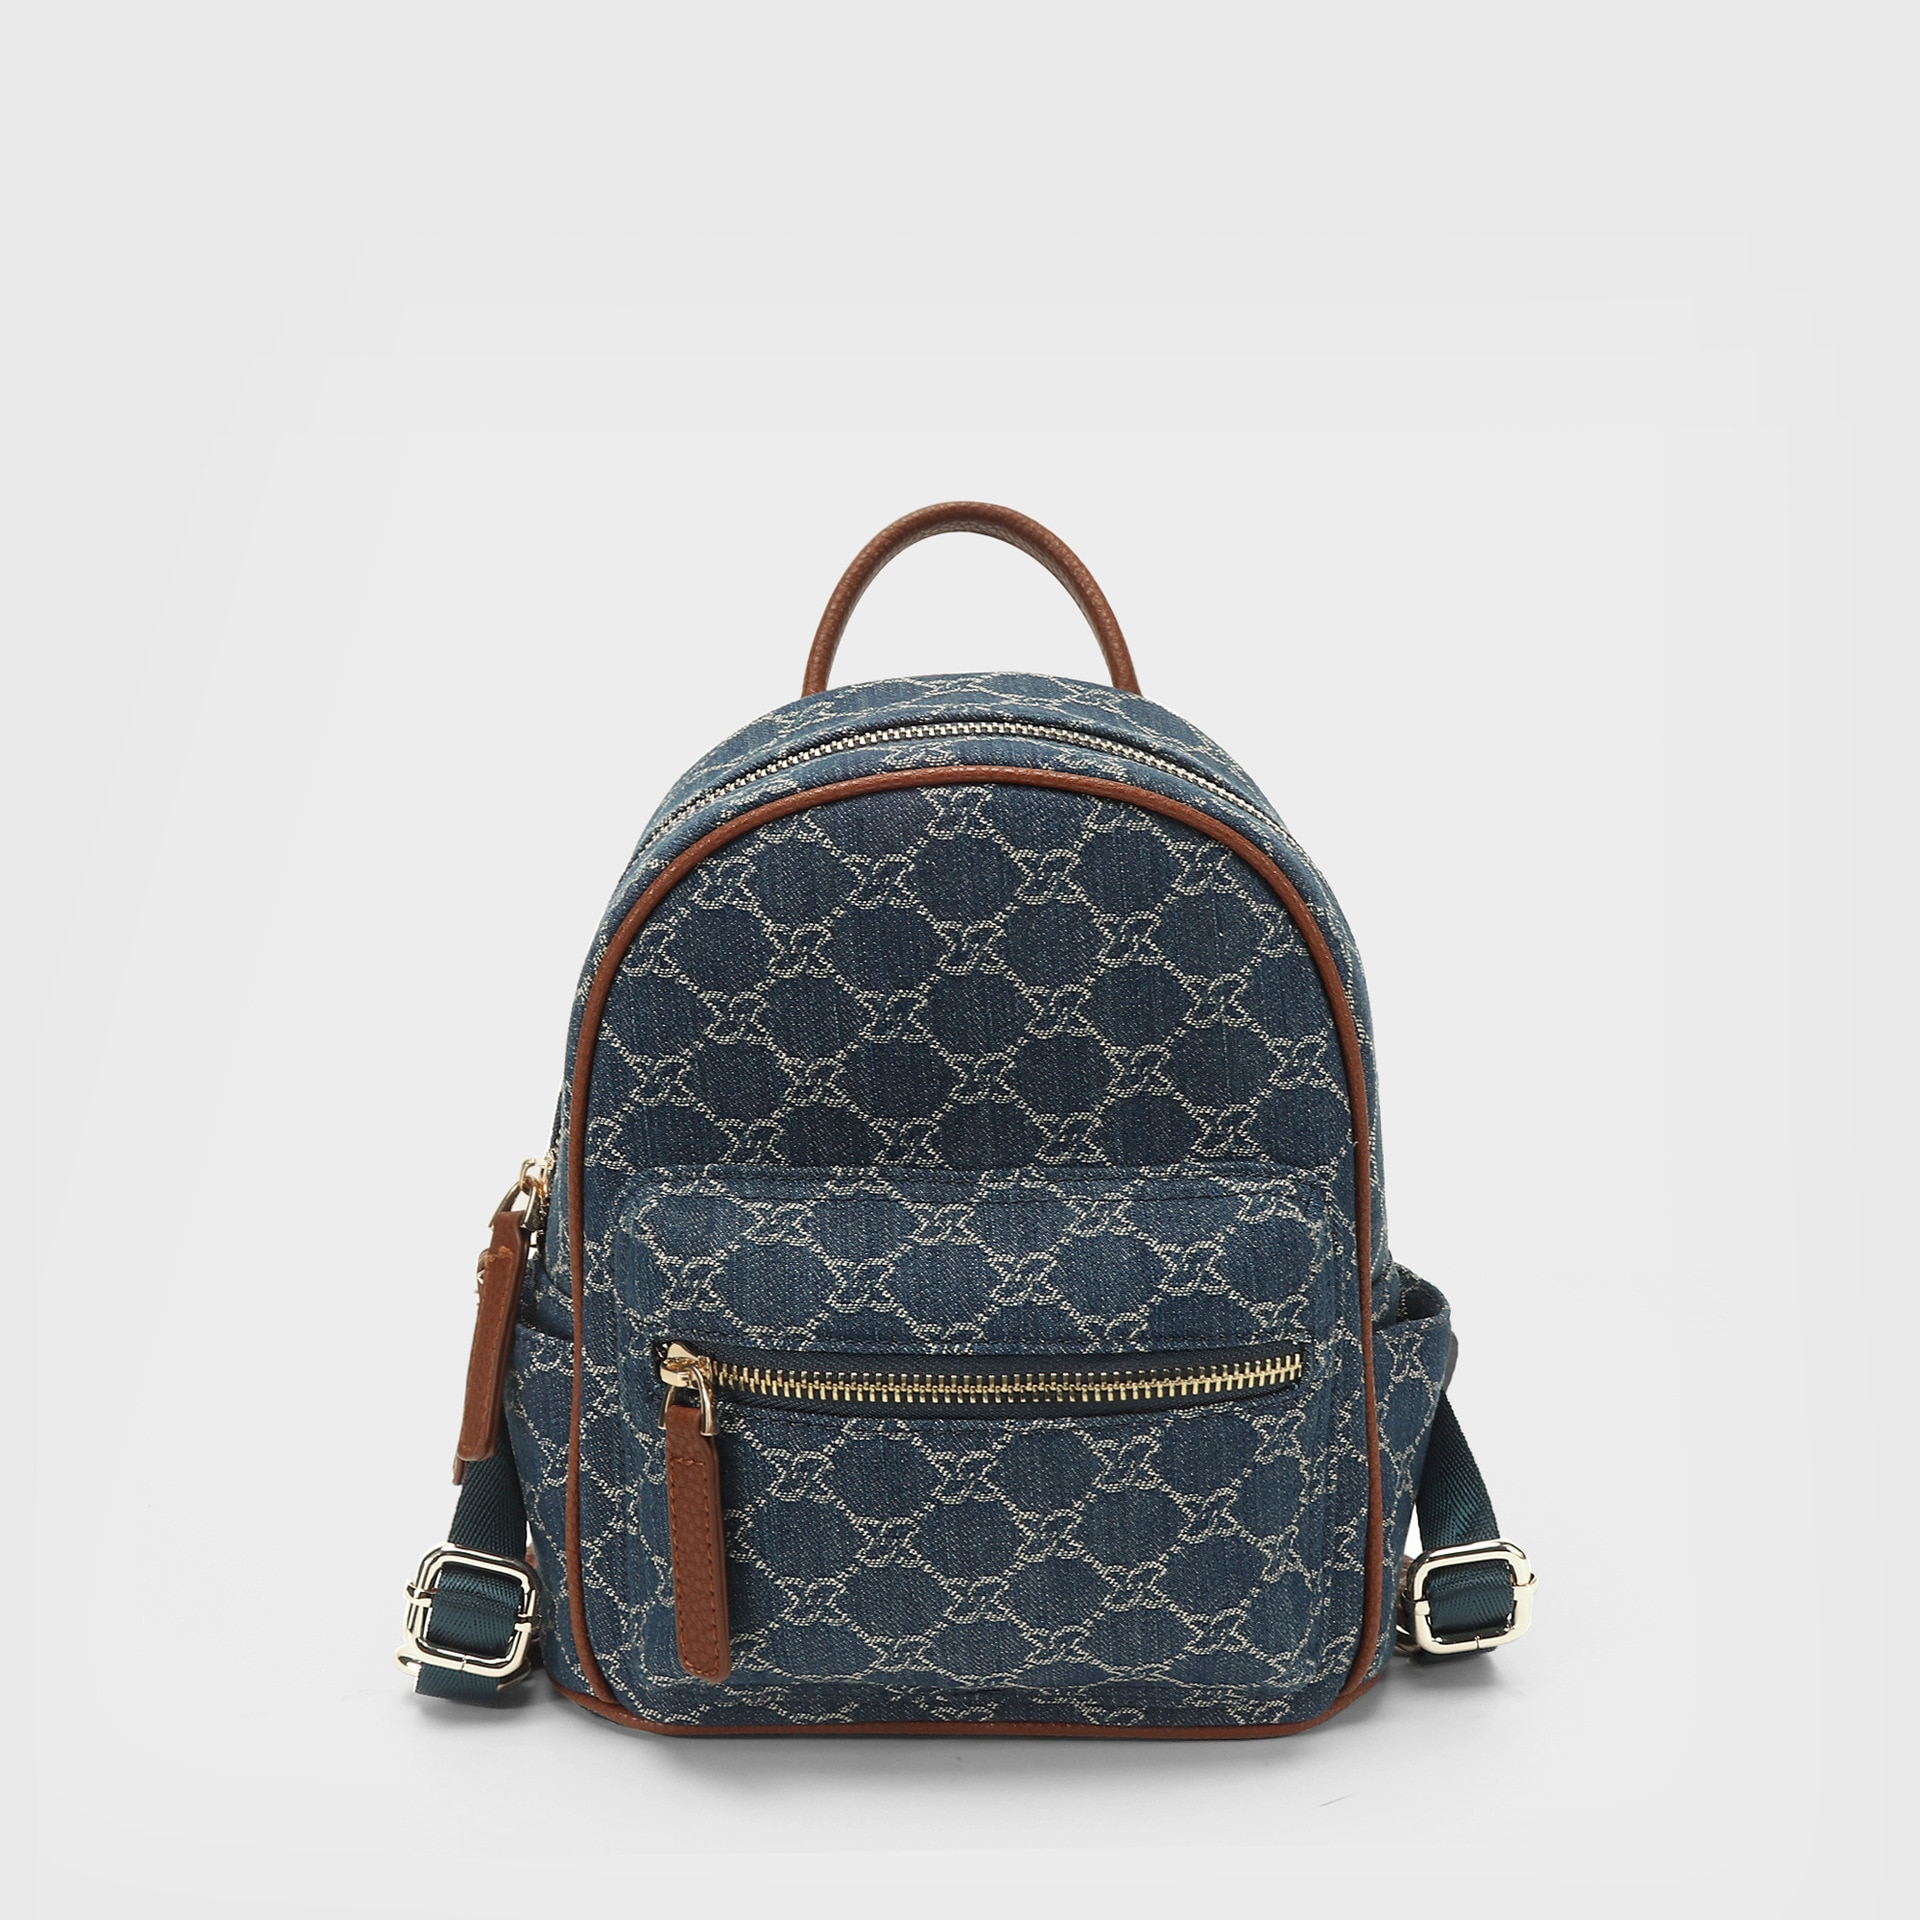 Canvas Backpack Female Summer 2021 New ins Super Fire Wild Mini Fashion Trend Small Backpack Jacquard Fabric Leisure Travel